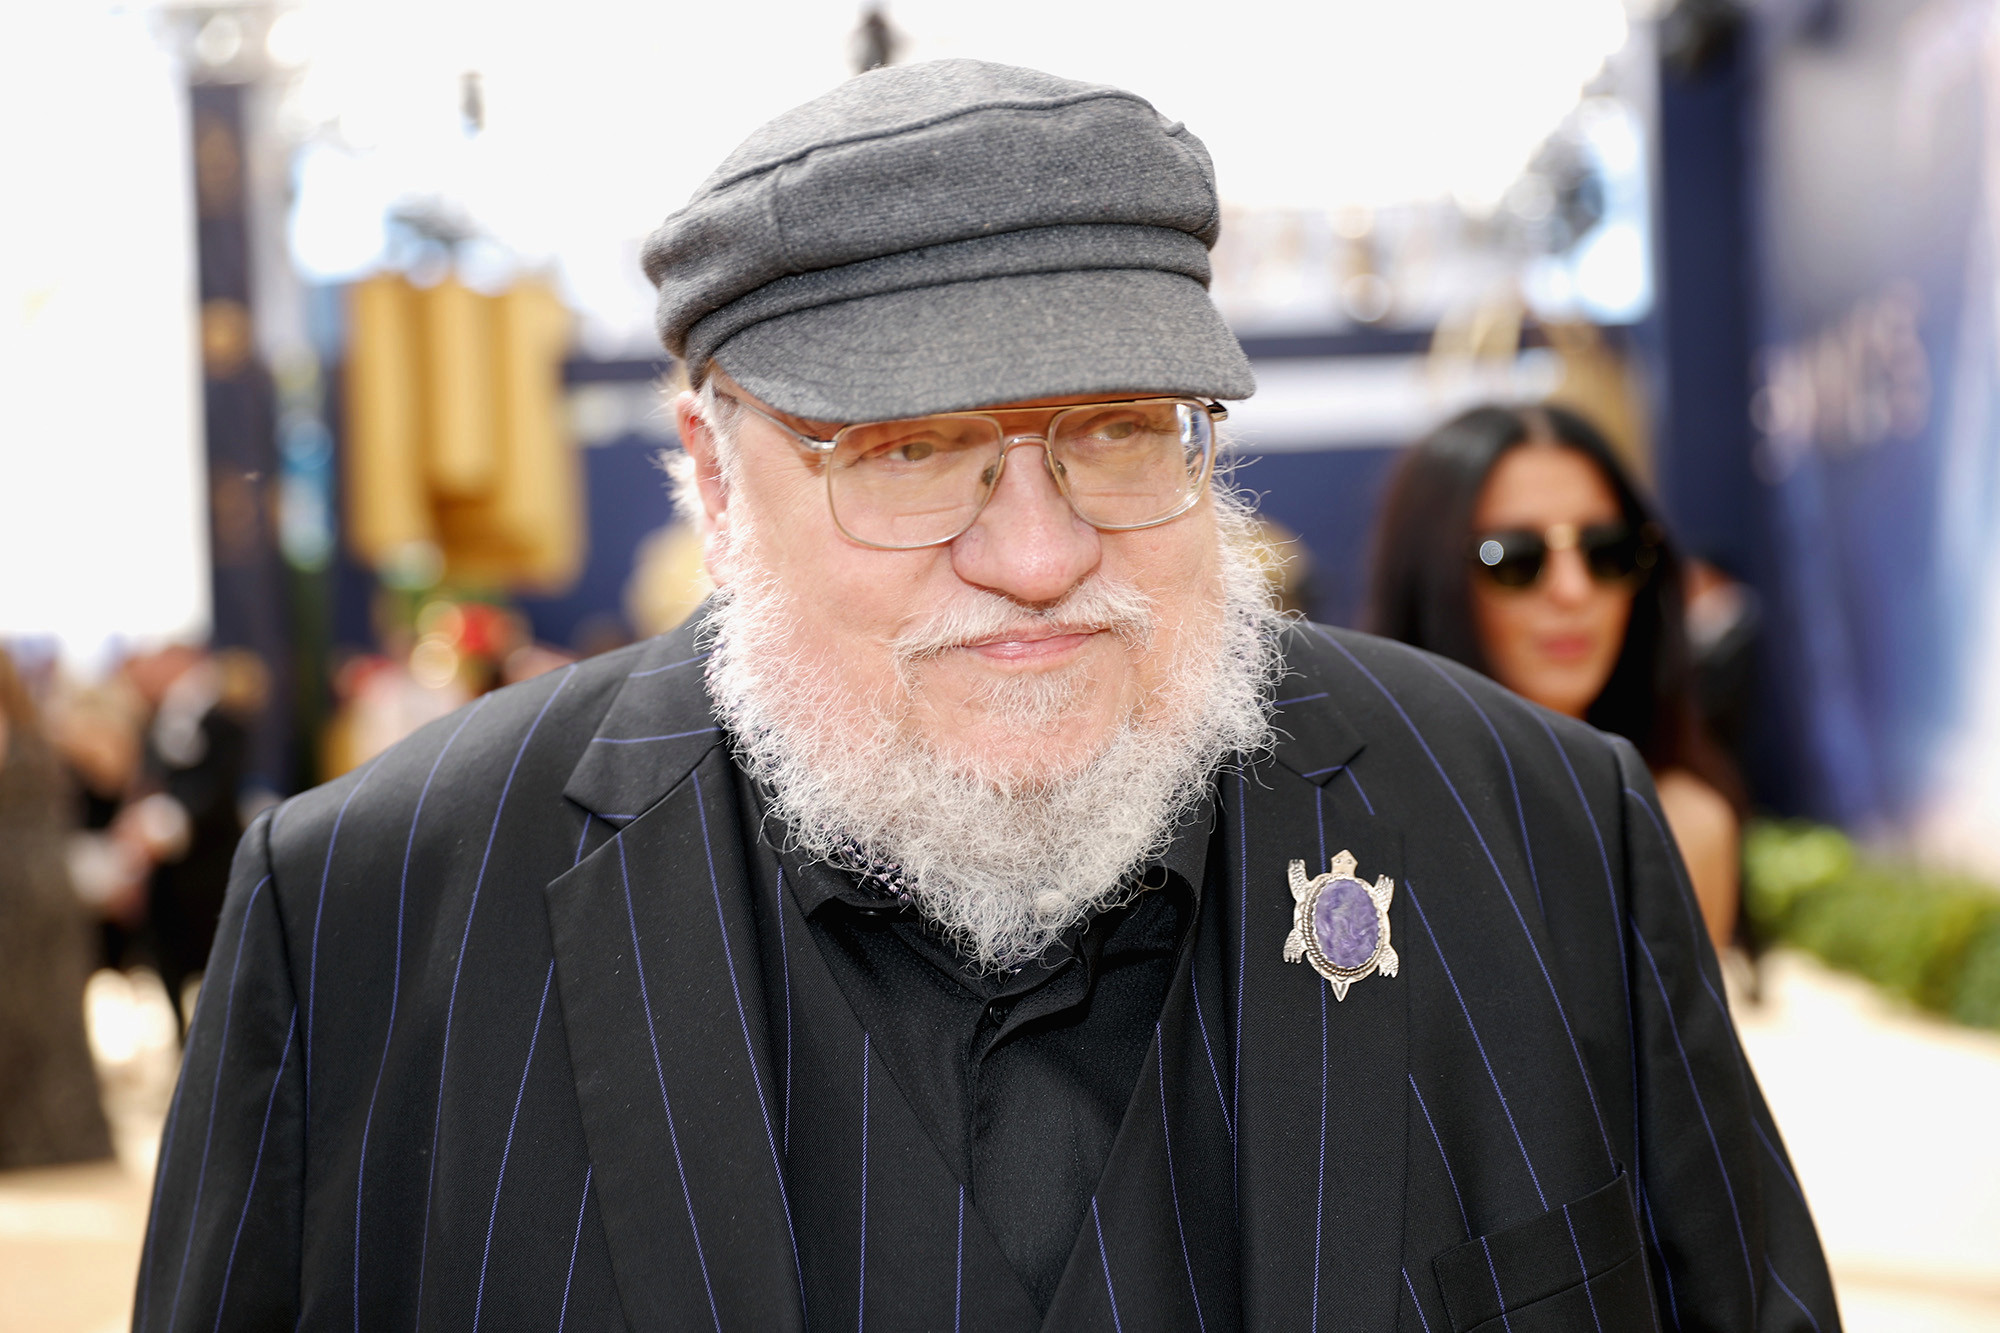 George R.R. Martin proclaims NYC pizza the best in the world